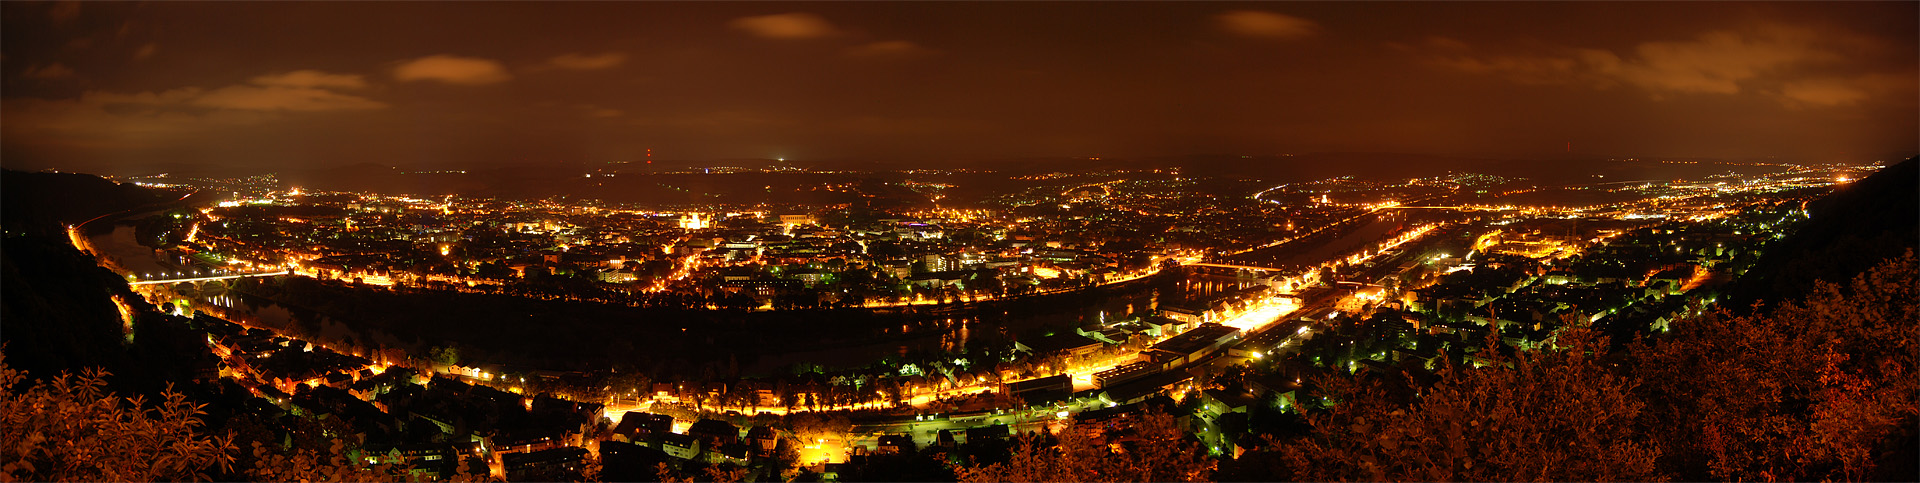 Trier - Night Panorama by 55Laney69